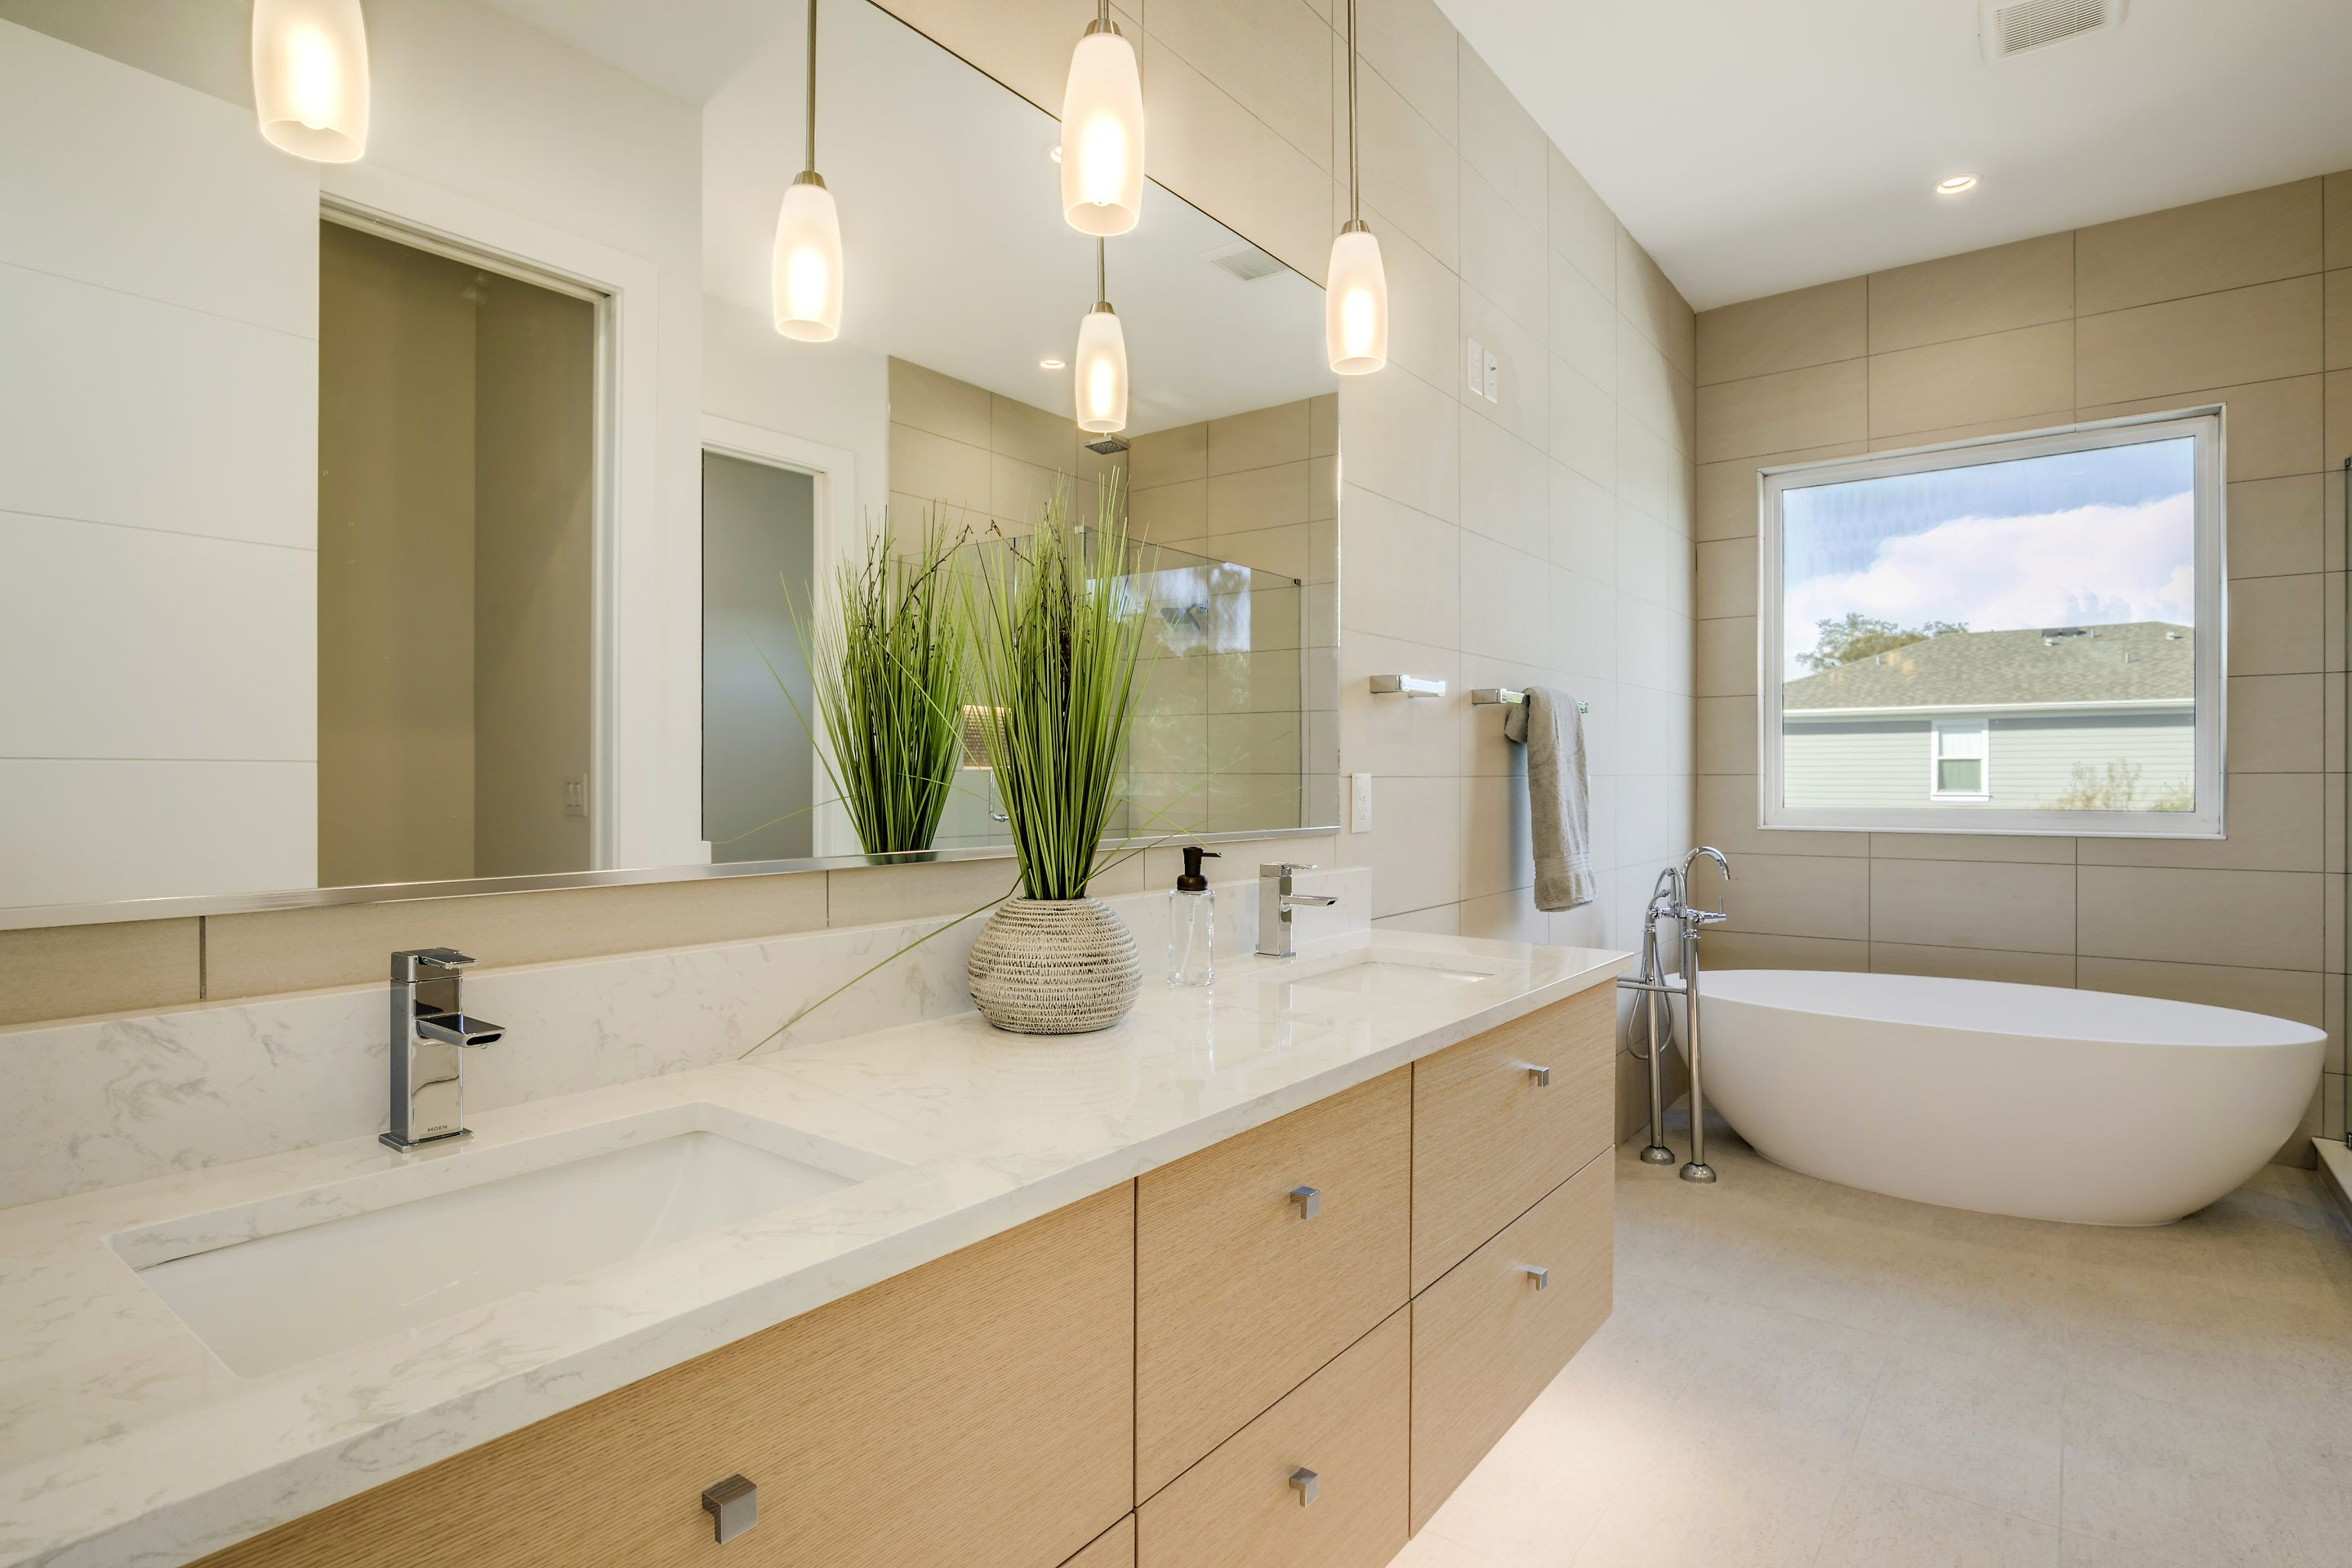 Modern Master Bath With Floating Vanity And Vessel Tub Led